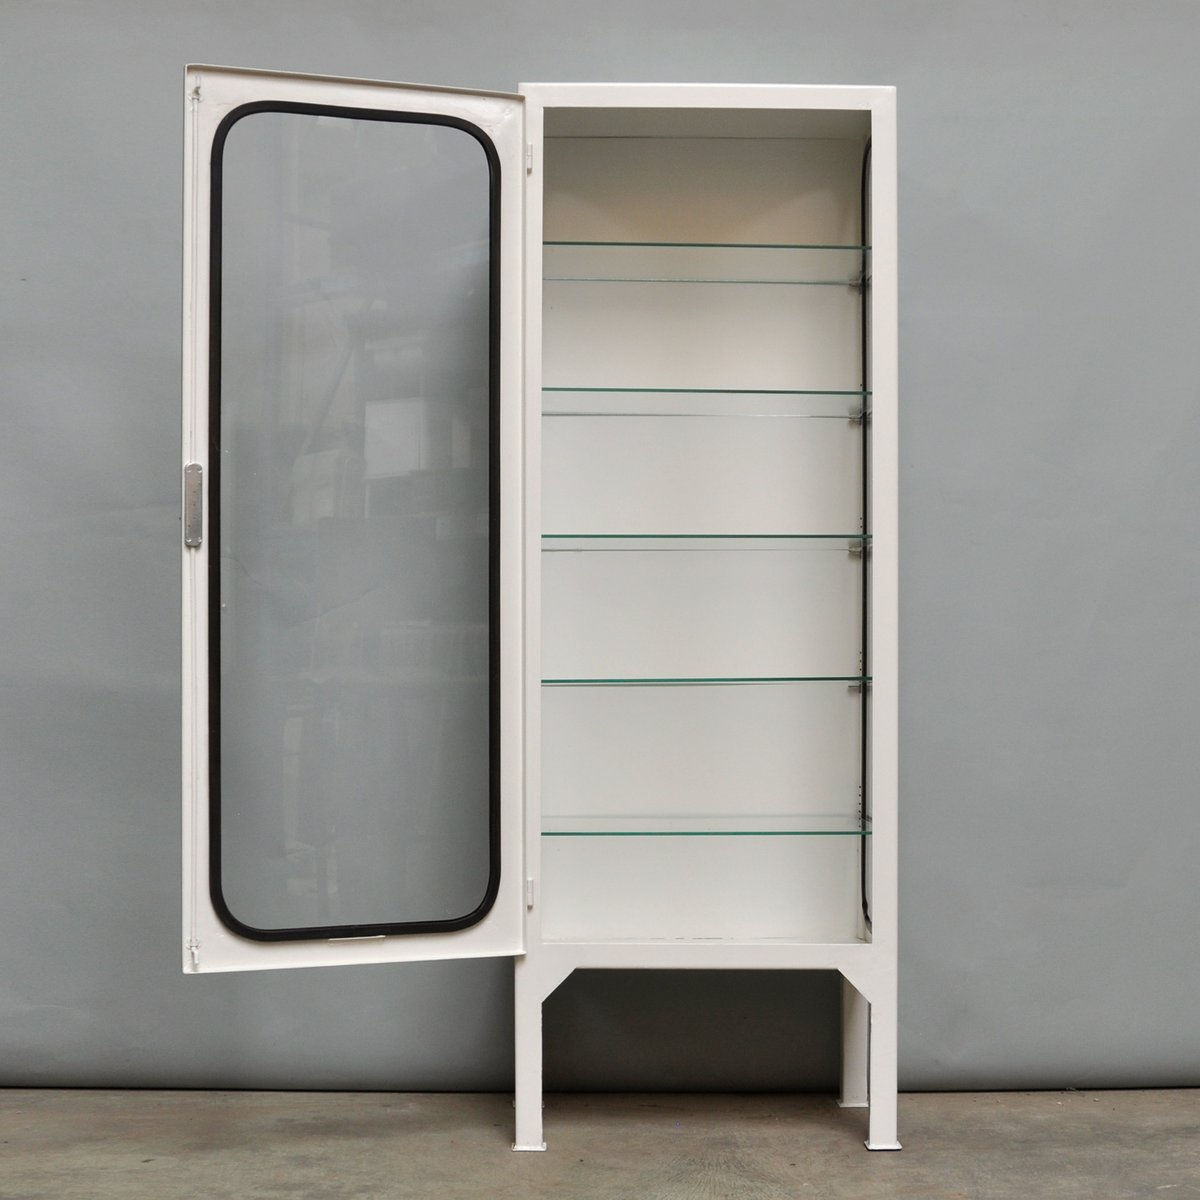 armoire pharmacie vintage en verre et fer 1975 en vente. Black Bedroom Furniture Sets. Home Design Ideas